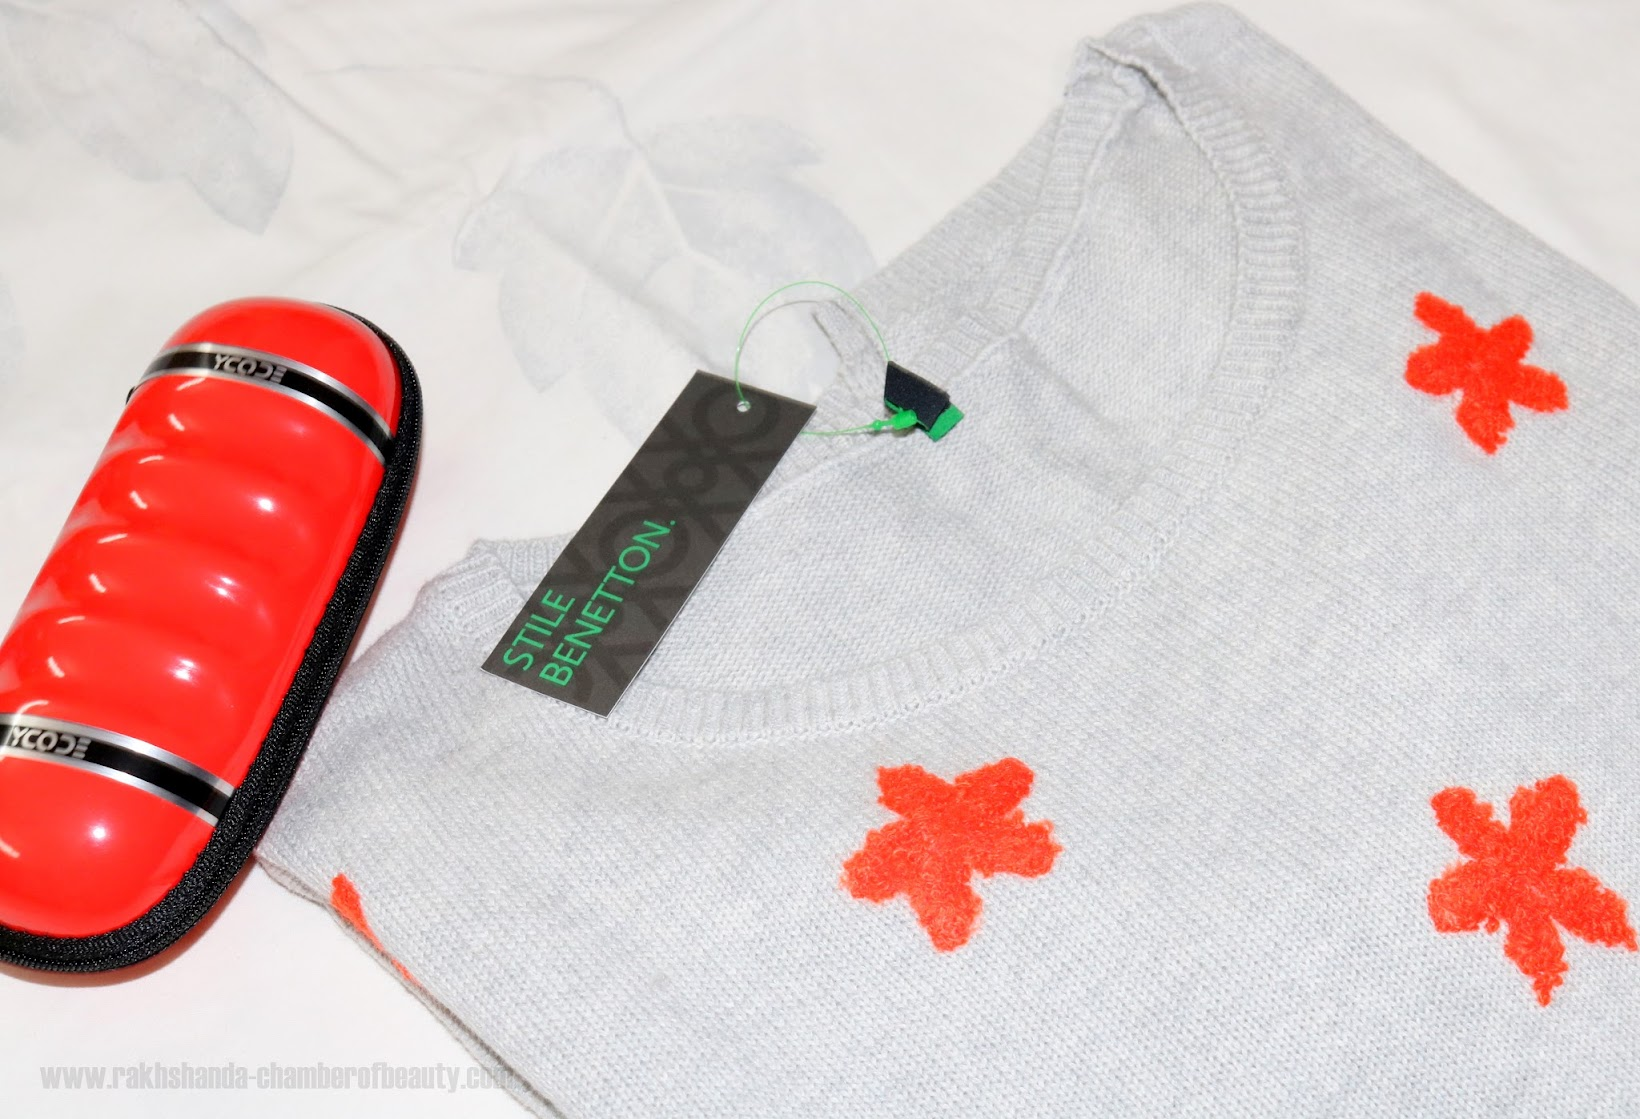 Winter with United Colors of Benetton & Jabong.com, Autumn/Winter collection, fashion, grey and orange, how to style a grey jumper, indian fashion blogger, jabong.com, knitted jumper, new in, orange, Chamber Of Beauty, United Colors Of Benetton, winter fashion, rakhshanda chamber of beauty.com